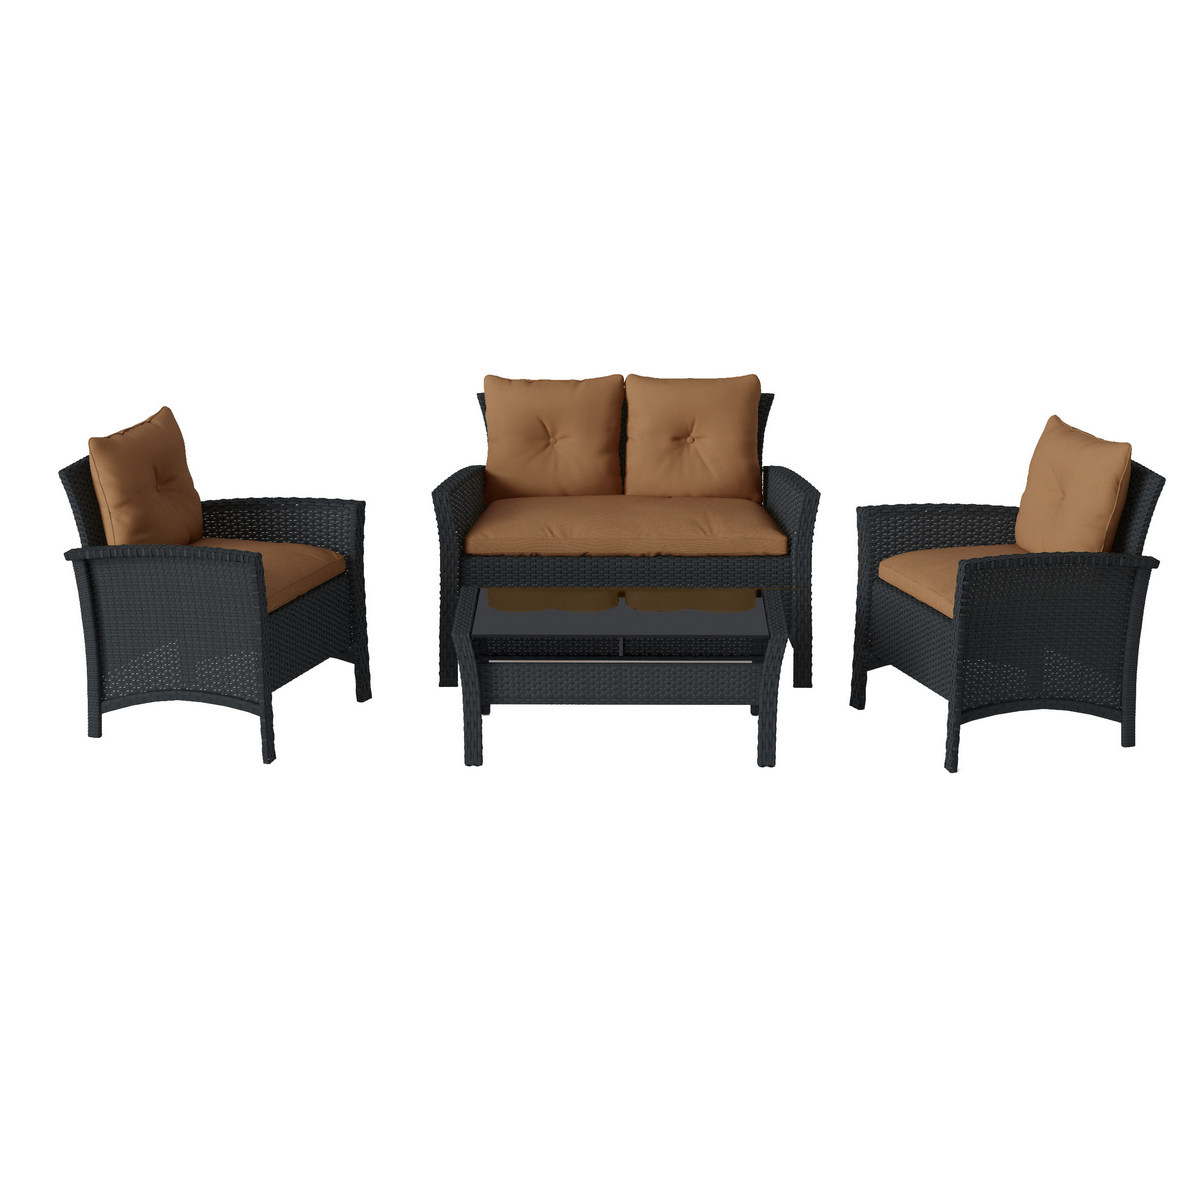 Corliving Patio Set Resin Rattan Wicker Brown